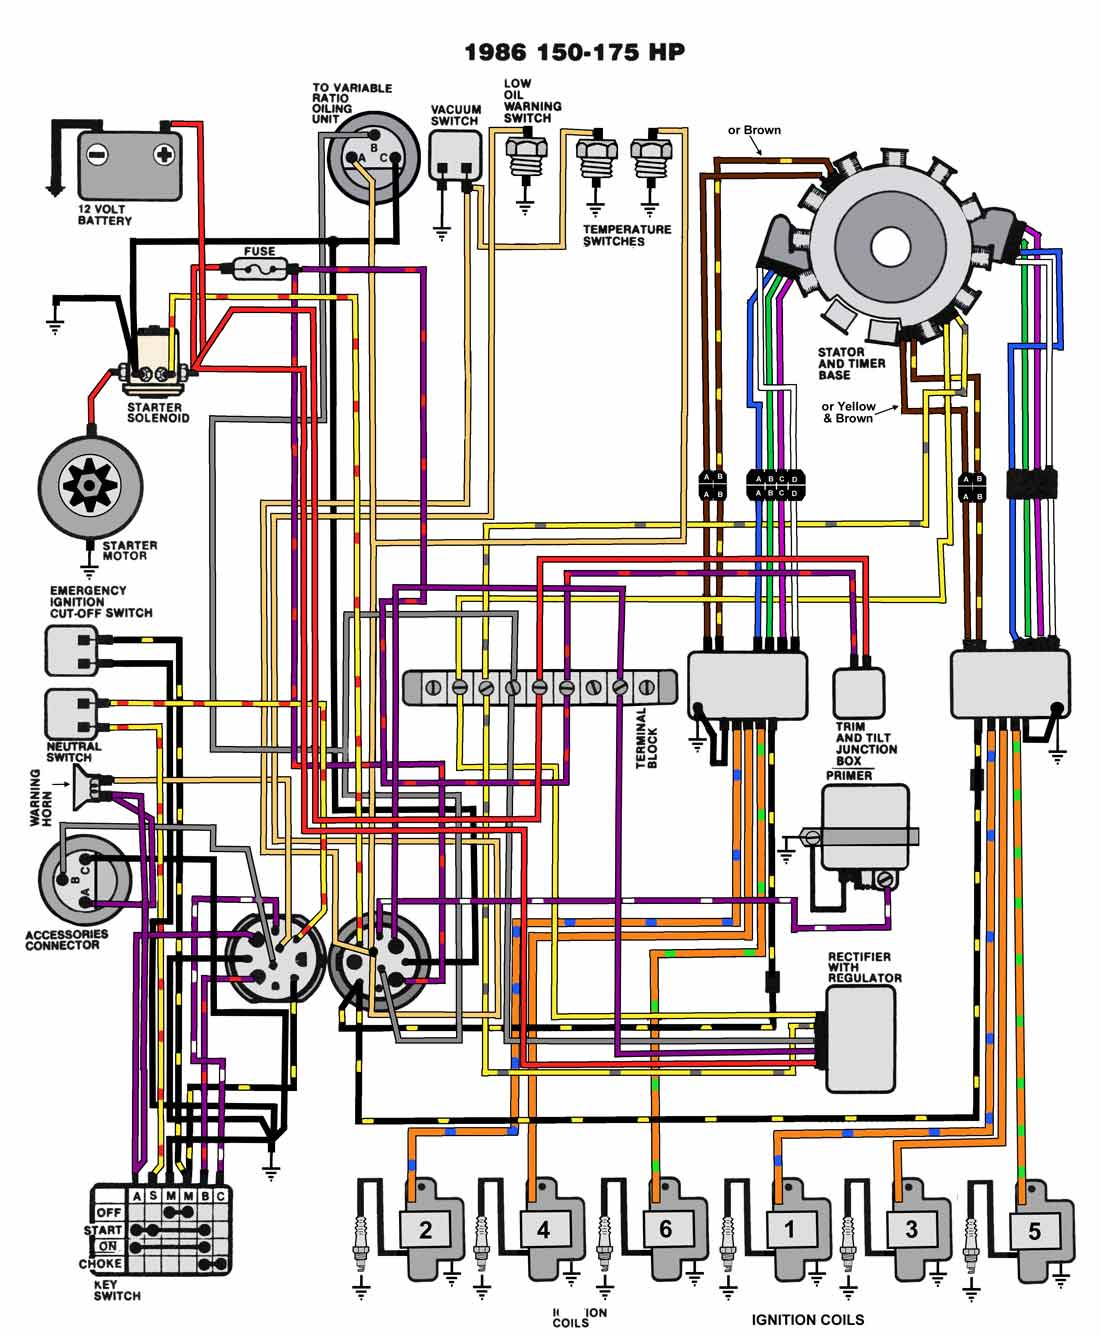 1986_150_175 1993 evirude 50 wiring diagram electronic circuit diagrams johnson outboard wiring schematic at webbmarketing.co